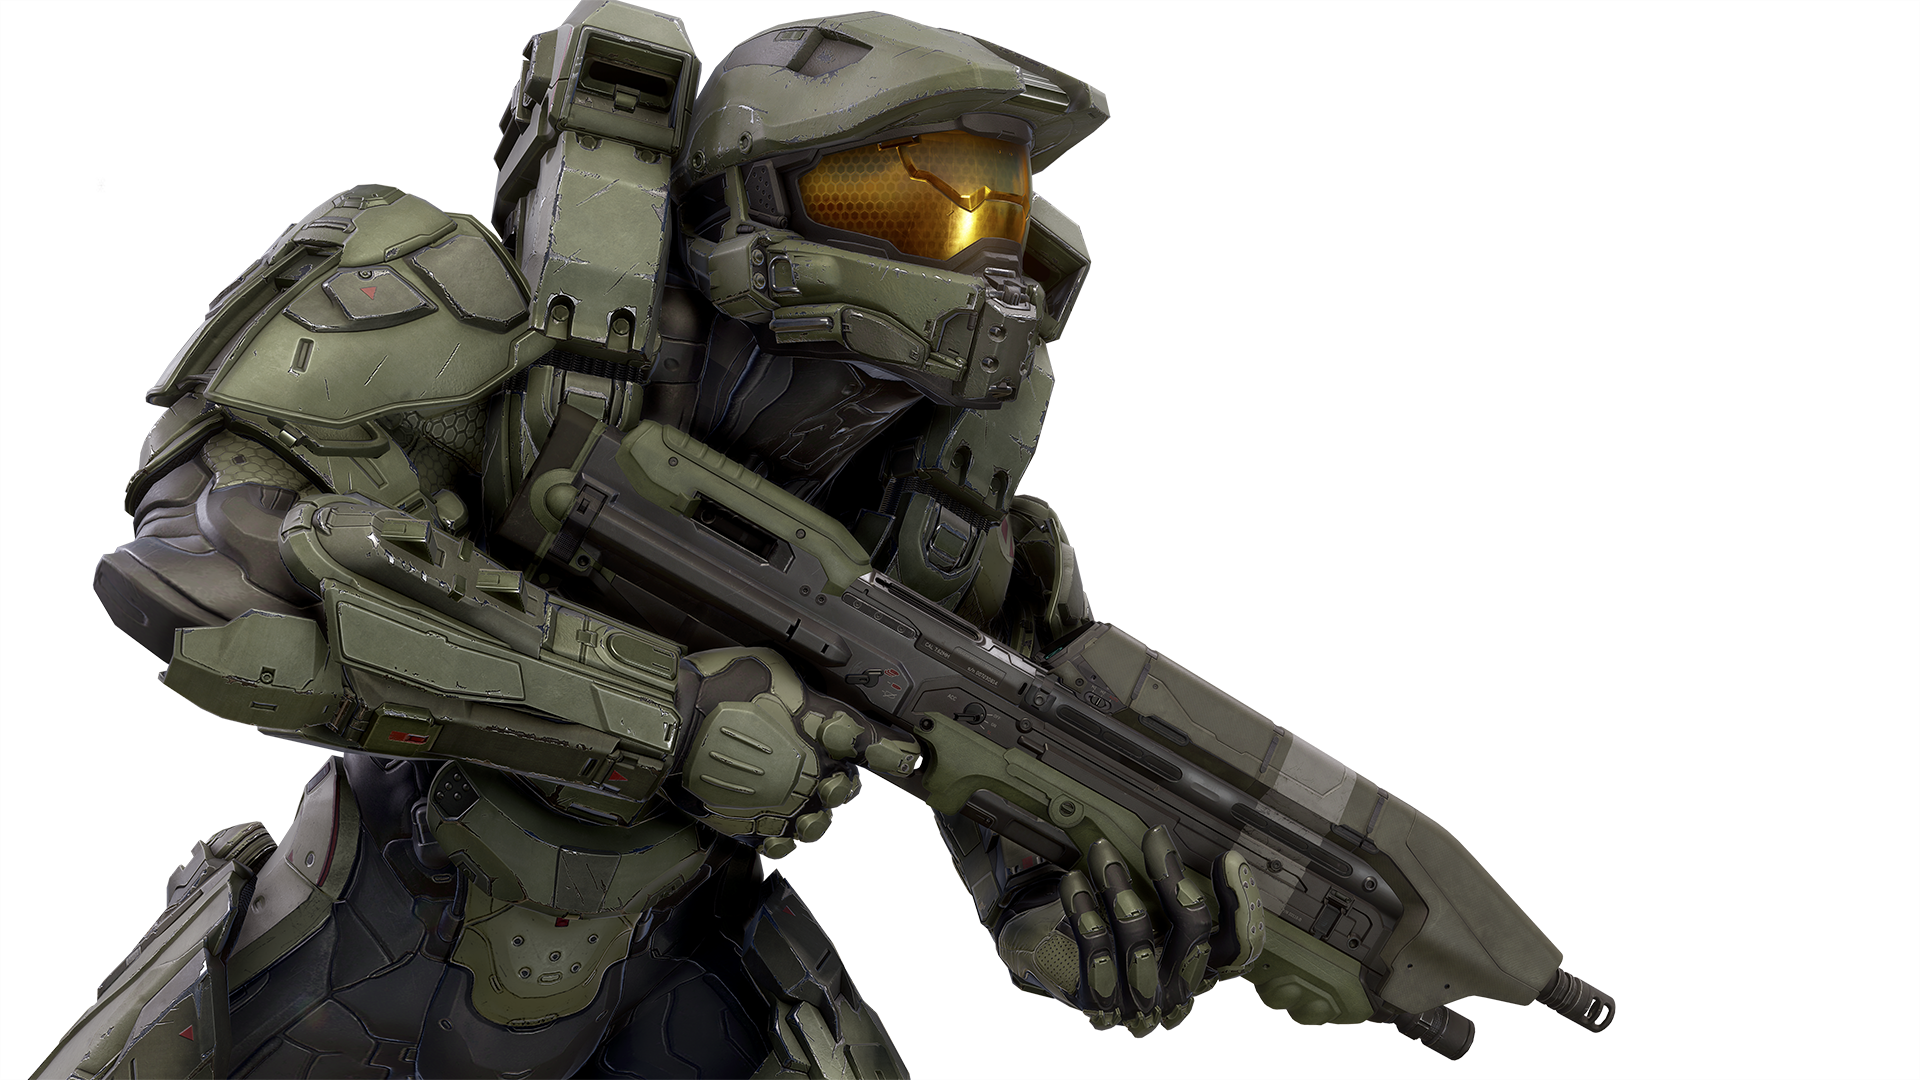 Halo Spartan Drawing Free Download Best Halo Spartan